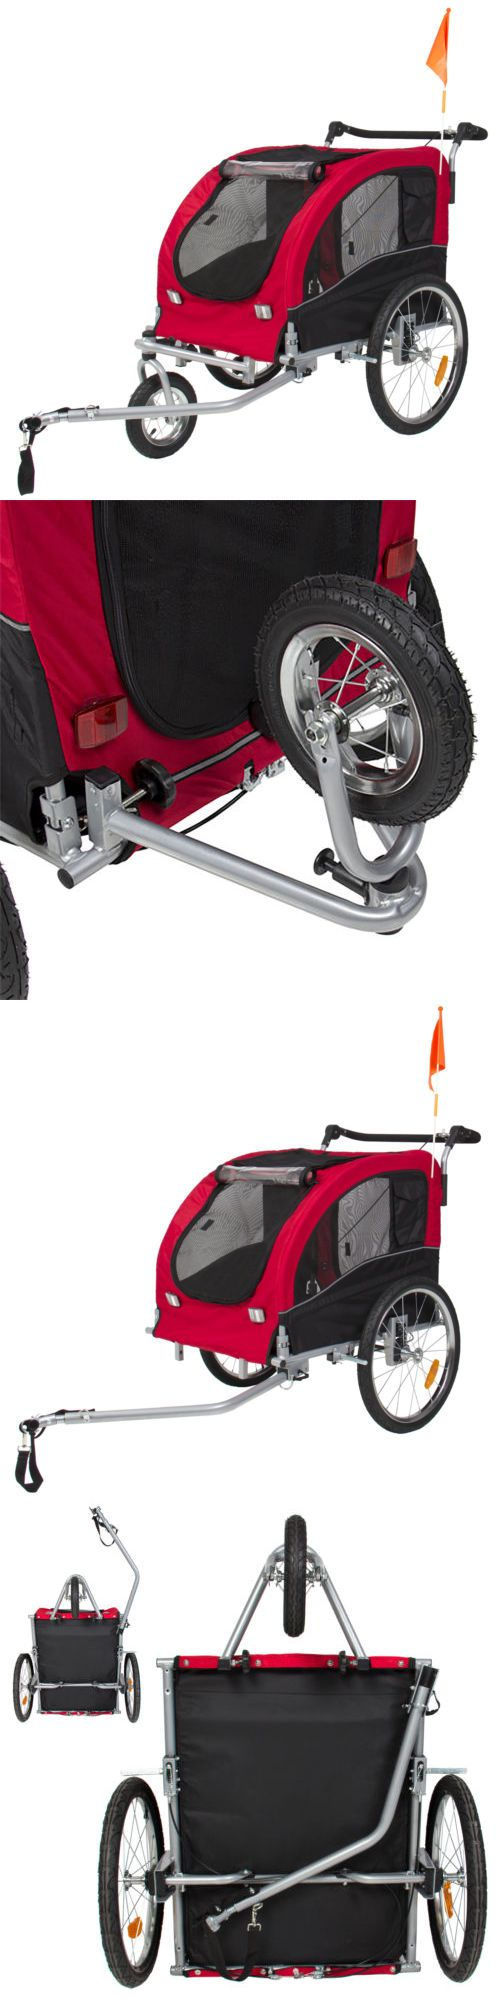 Strollers 116380 2 In 1 Pet Dog Bike Trailer Bicycle